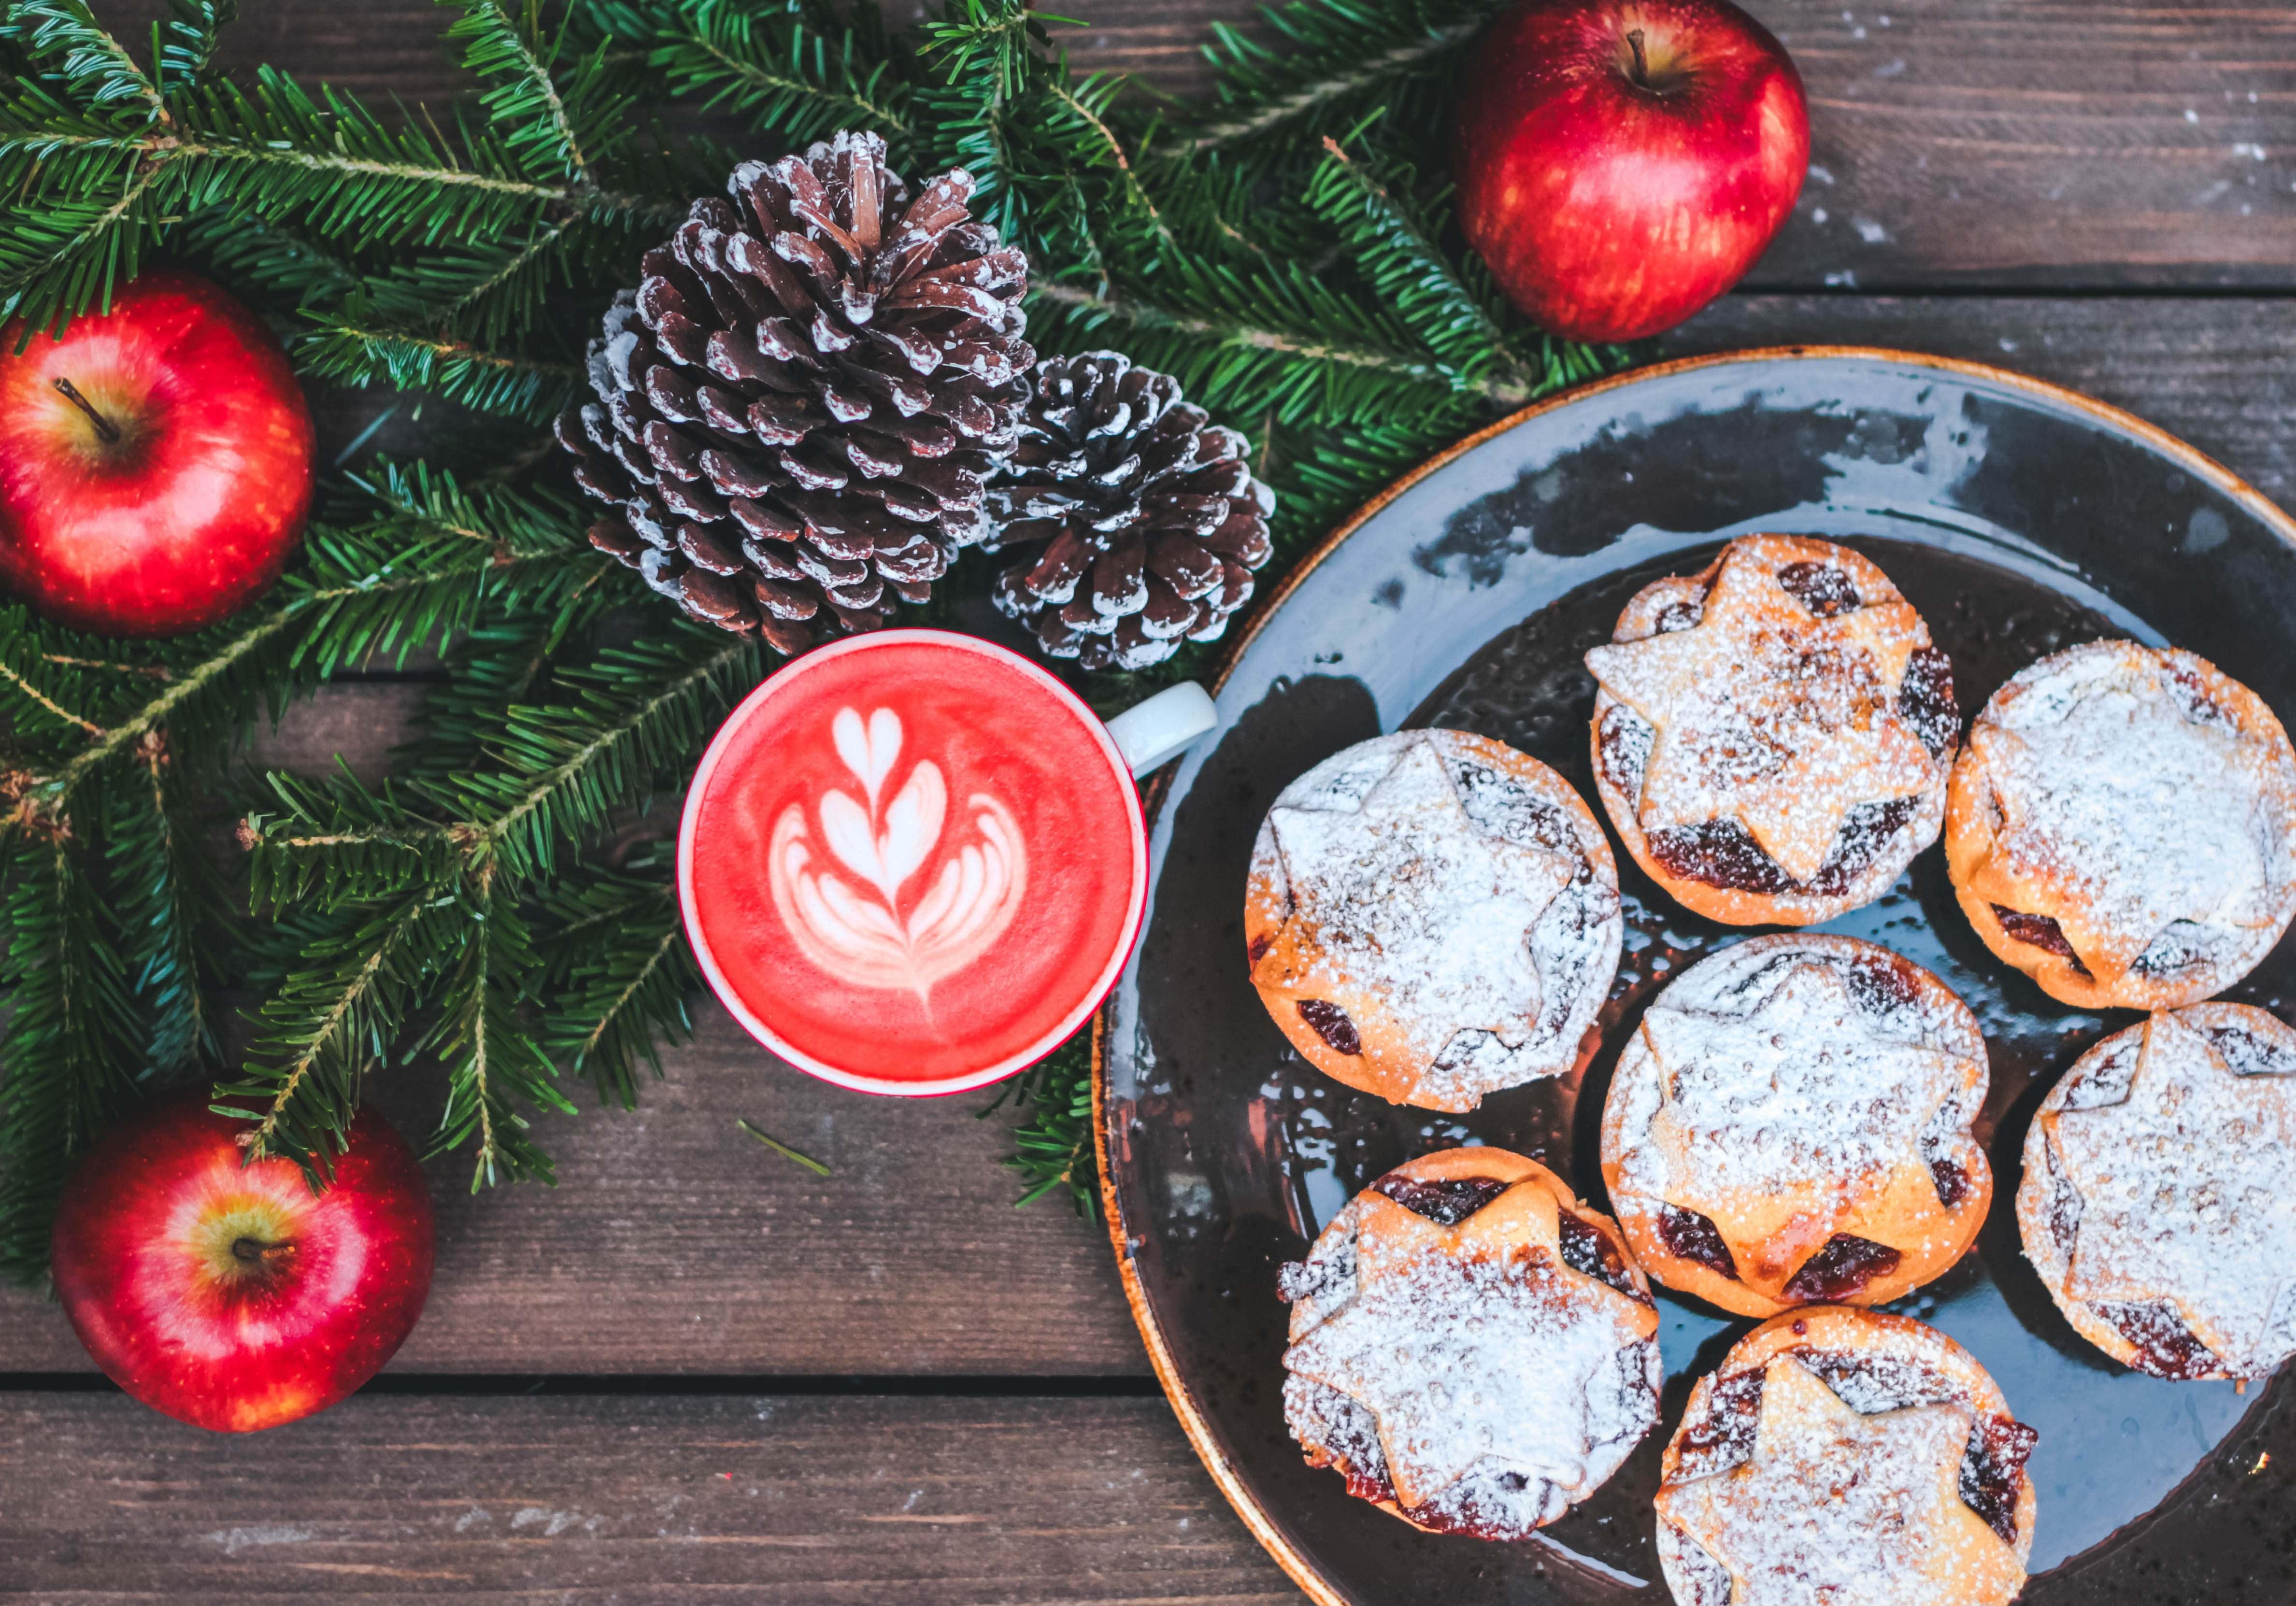 A festive set up of apples, pine leaves, acorns, and mince pies in London